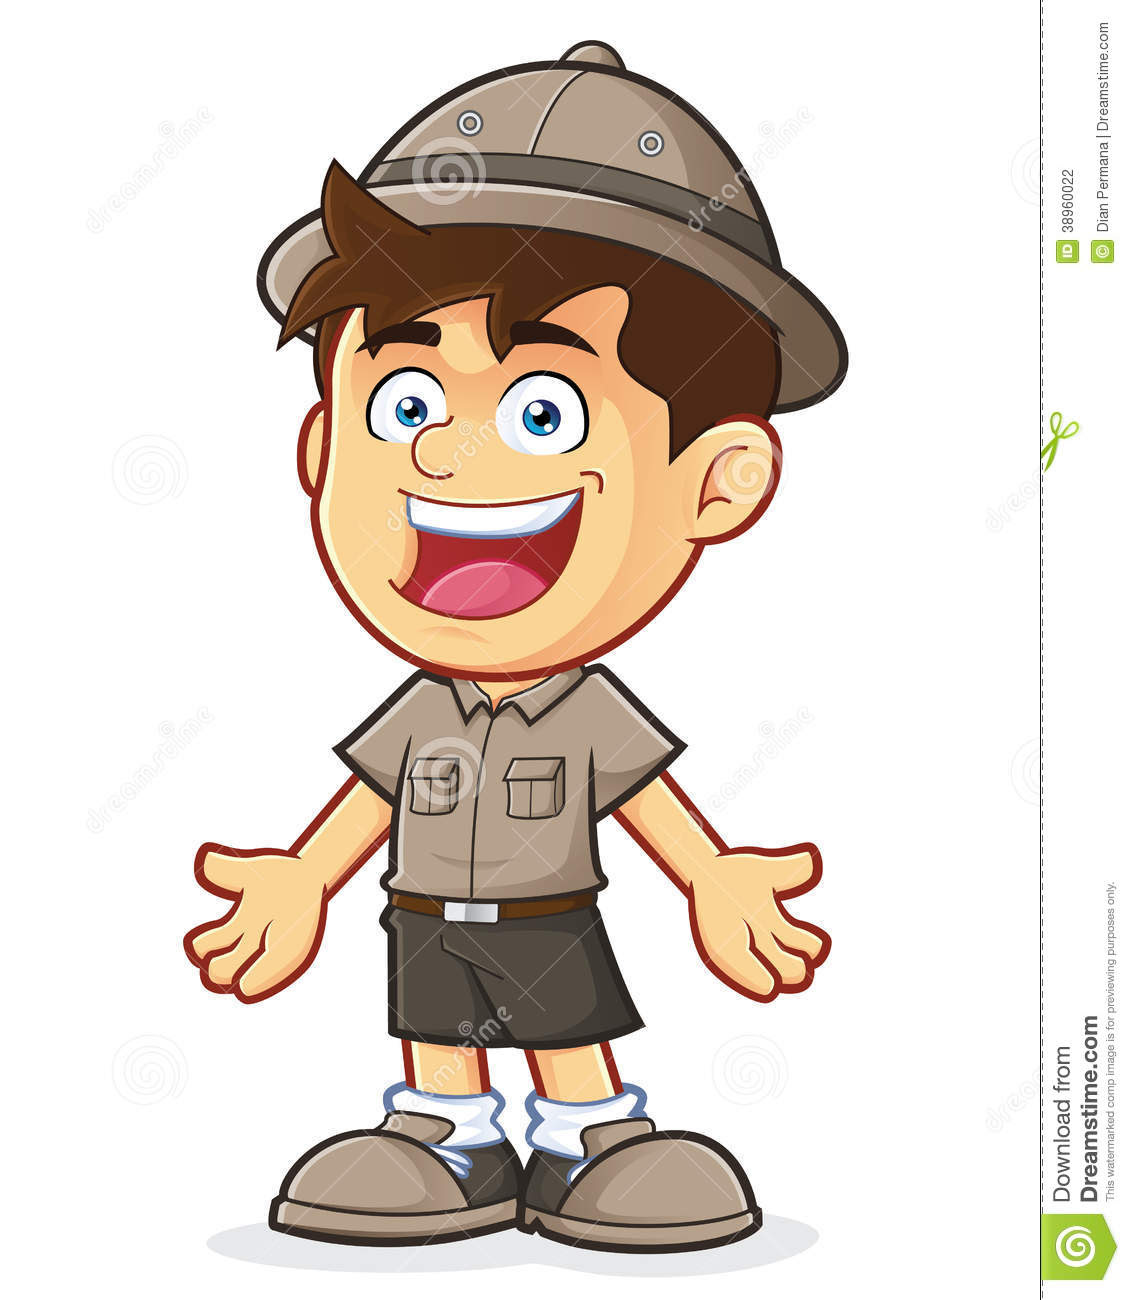 boy clipart boy scout explorer boy welcoming gesture vector clipart picture cartoon character 38960022